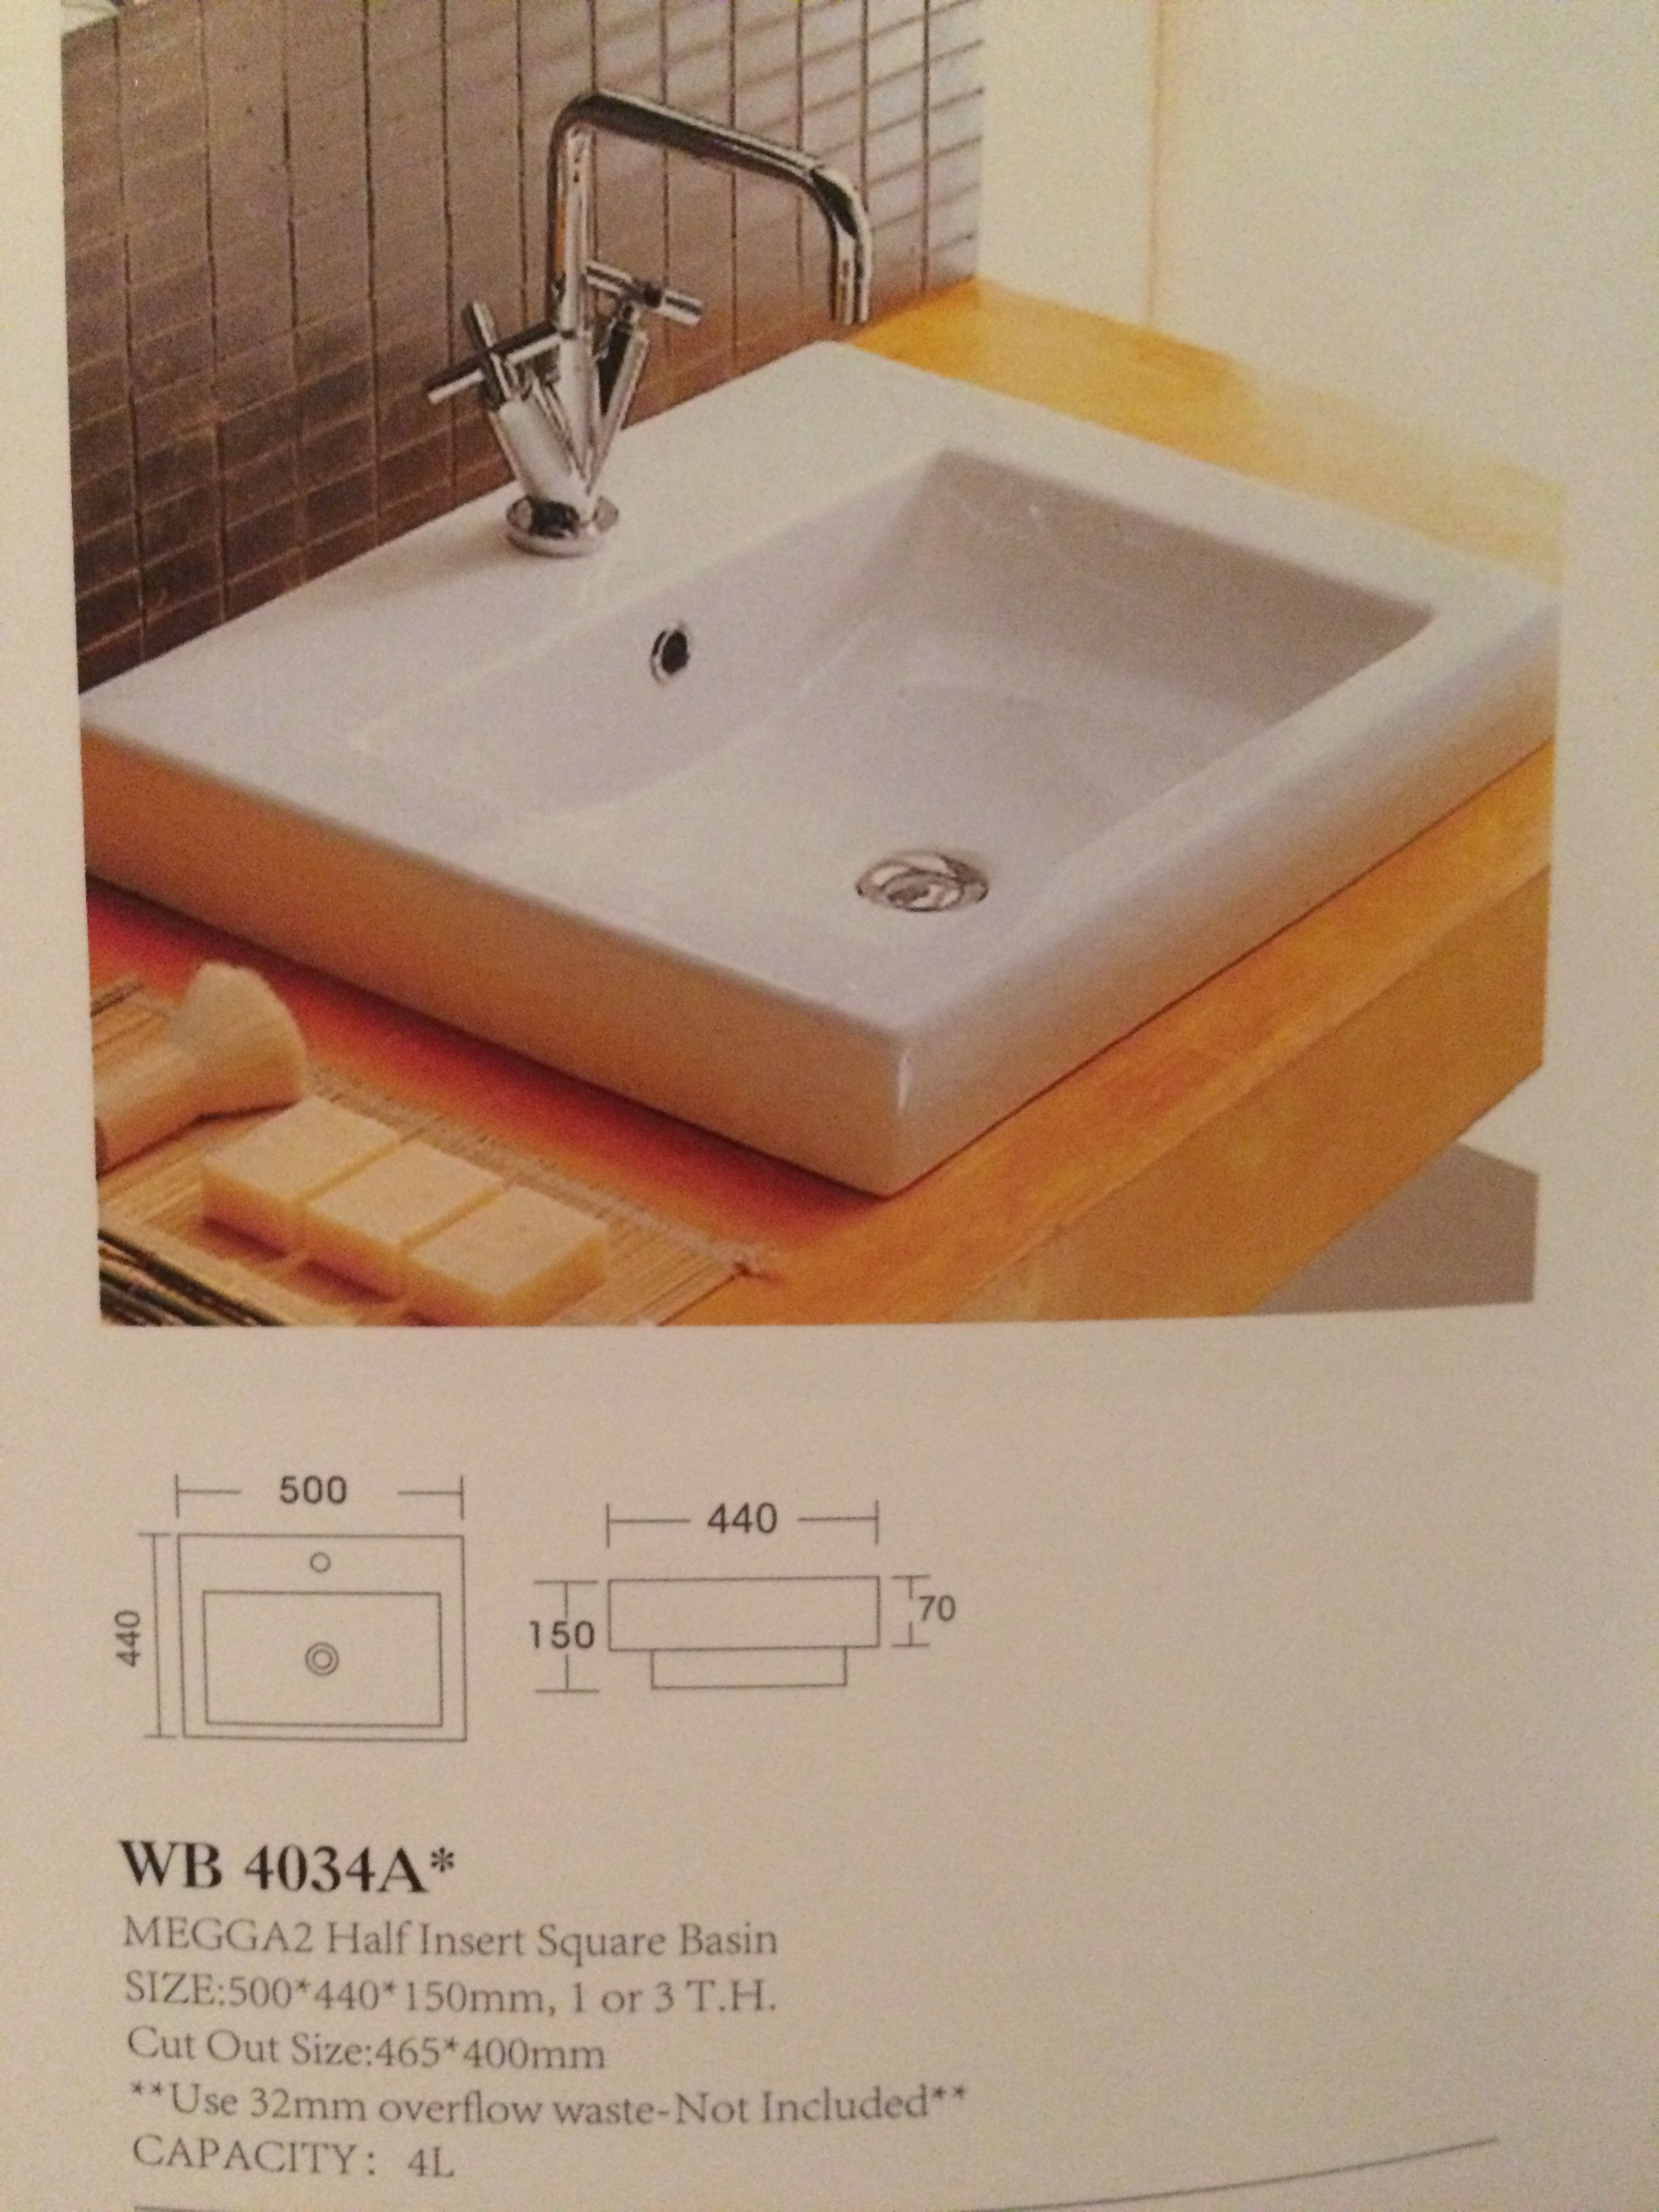 Cibo uber 1200 wall hung vanity from reece - 17 Best Images About Bathroom Short List On Pinterest Vanity Units Home Deco And Minimalism